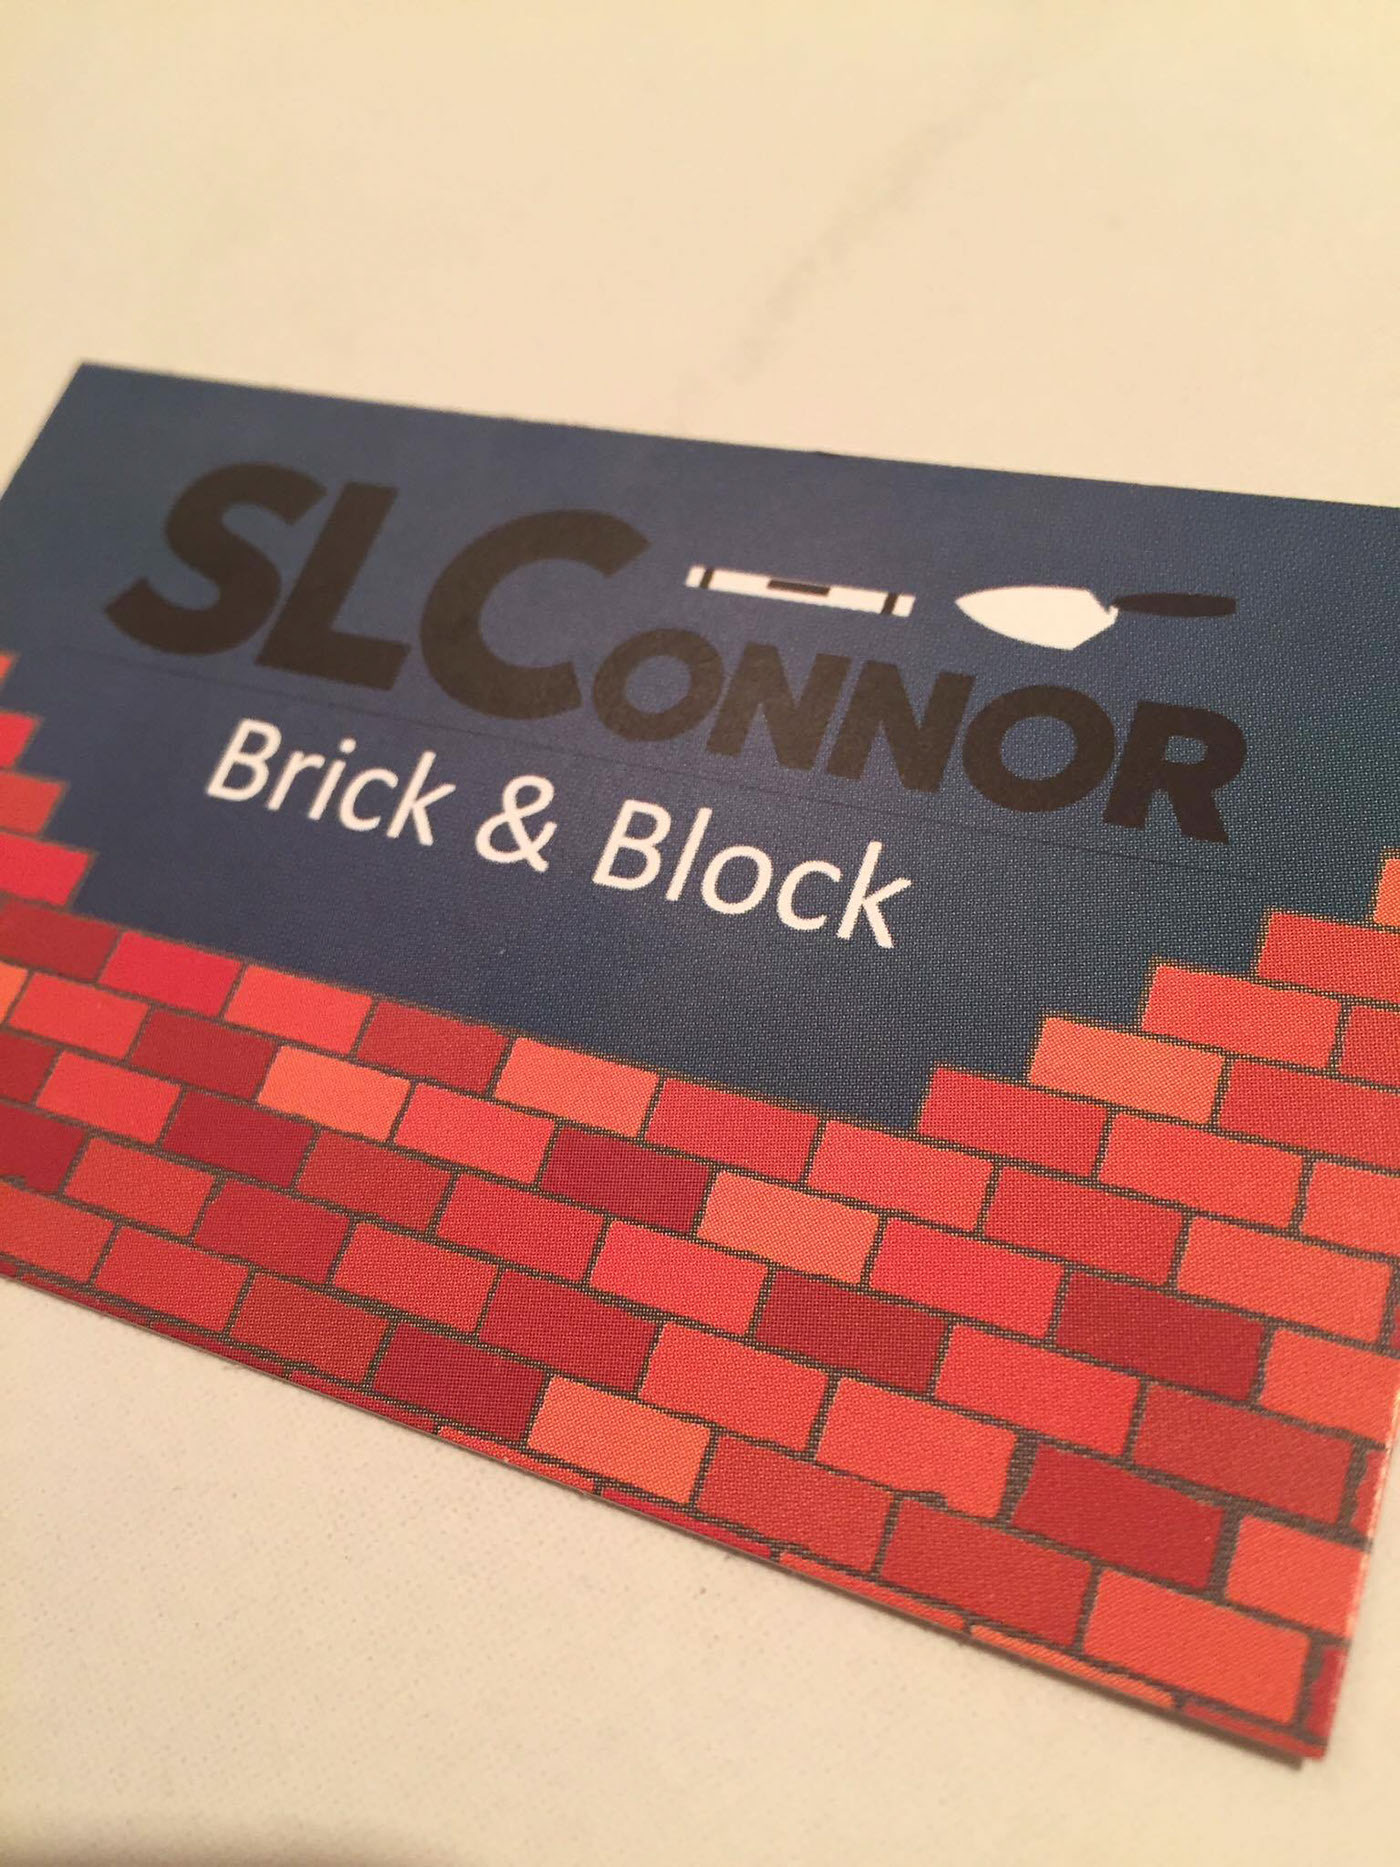 SLConnor Business Card on Behance